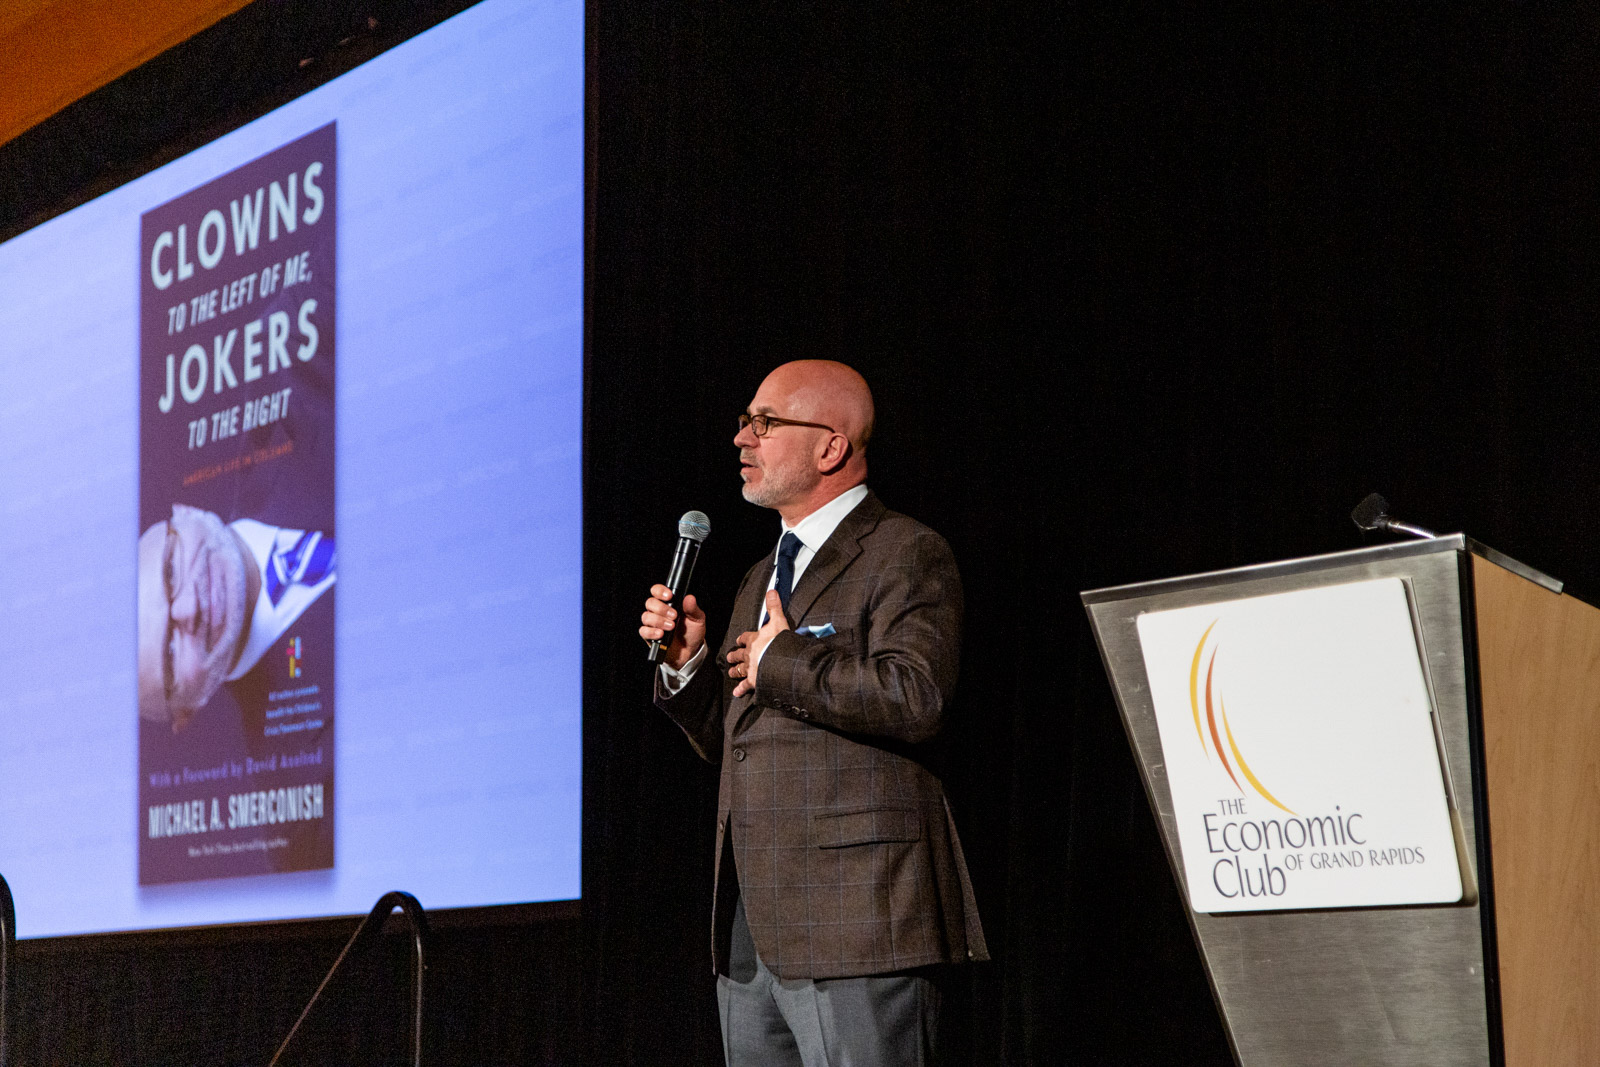 Michael Smerconish, Radio Host of POTUS Channel on Sirius XM and Best Selling Author